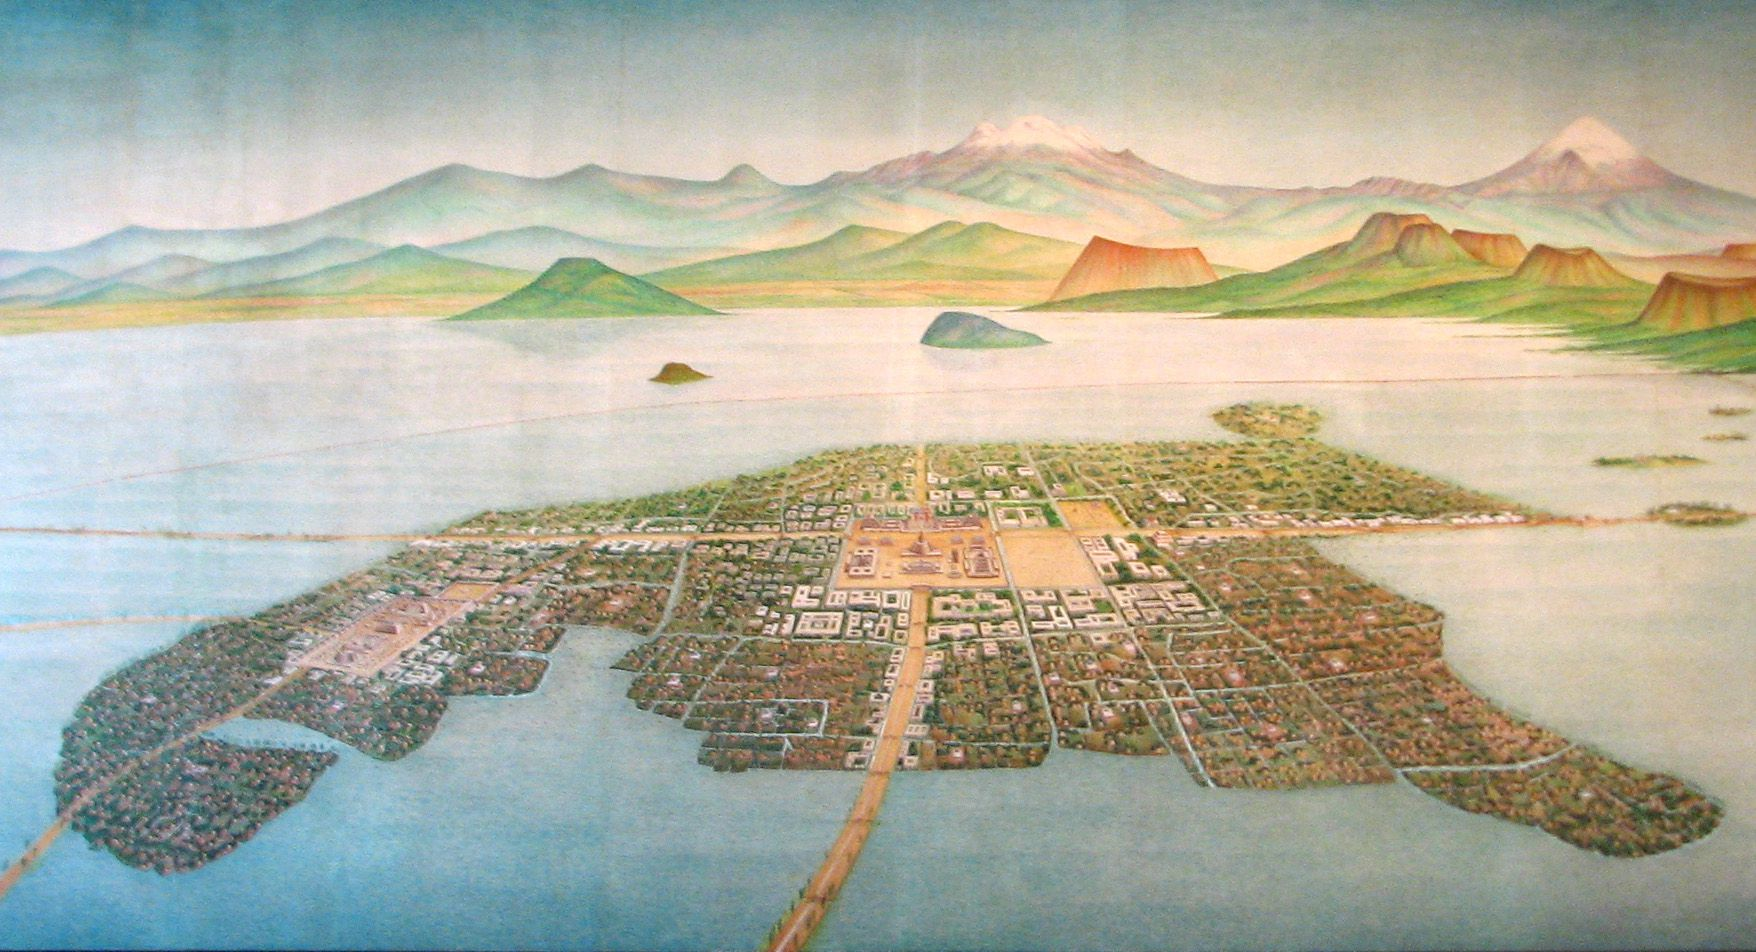 The flag of the united states of mexico birds eye view of tenochtitlan in 1519 reconstruction national museum of anthropology of mexico buycottarizona